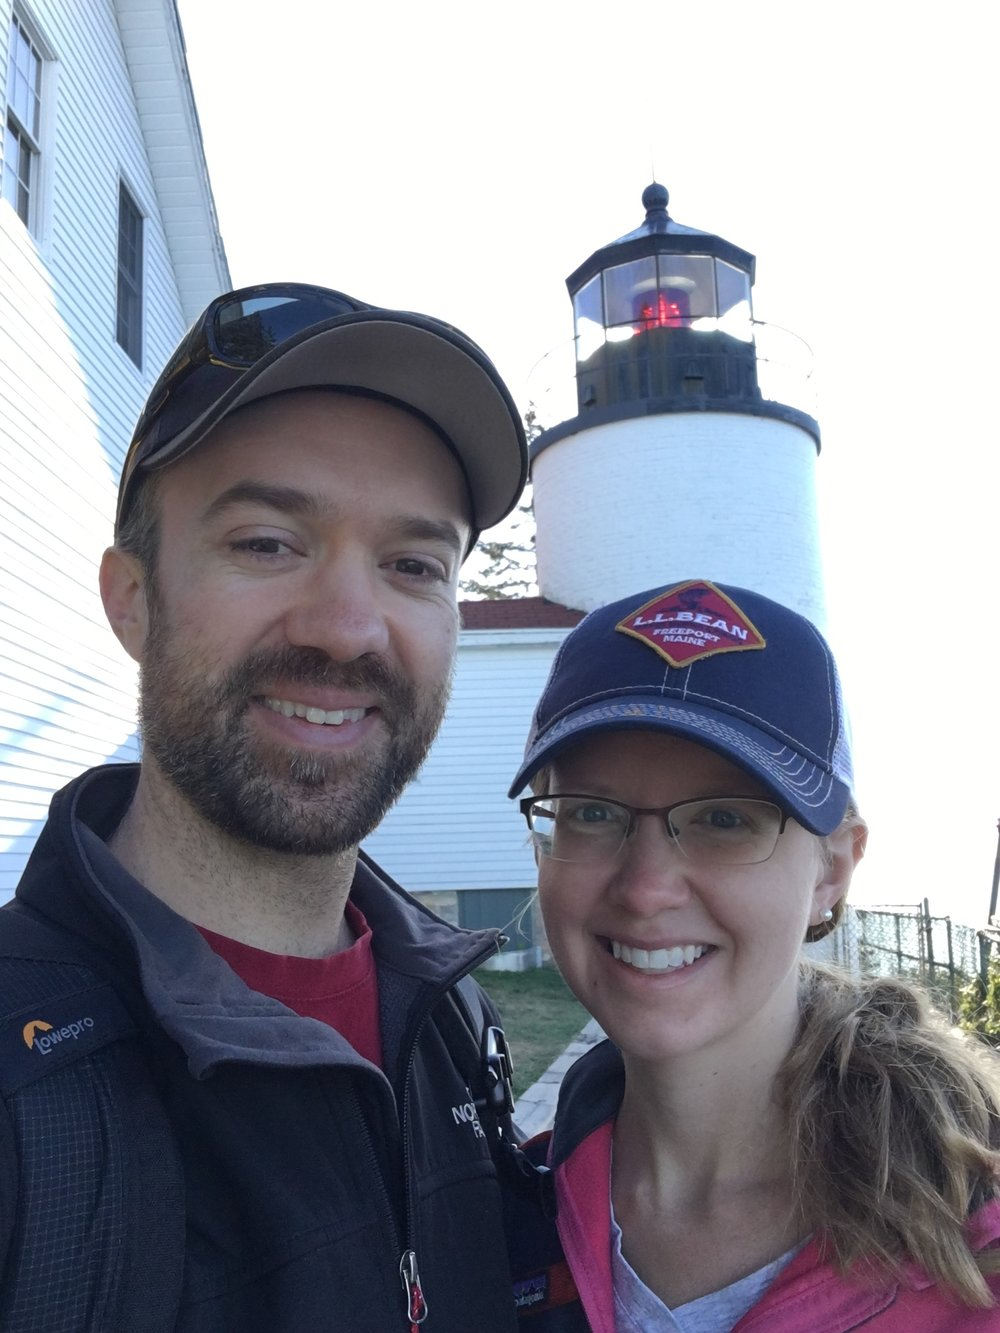 Bass Harbor Lighthouse, MDI